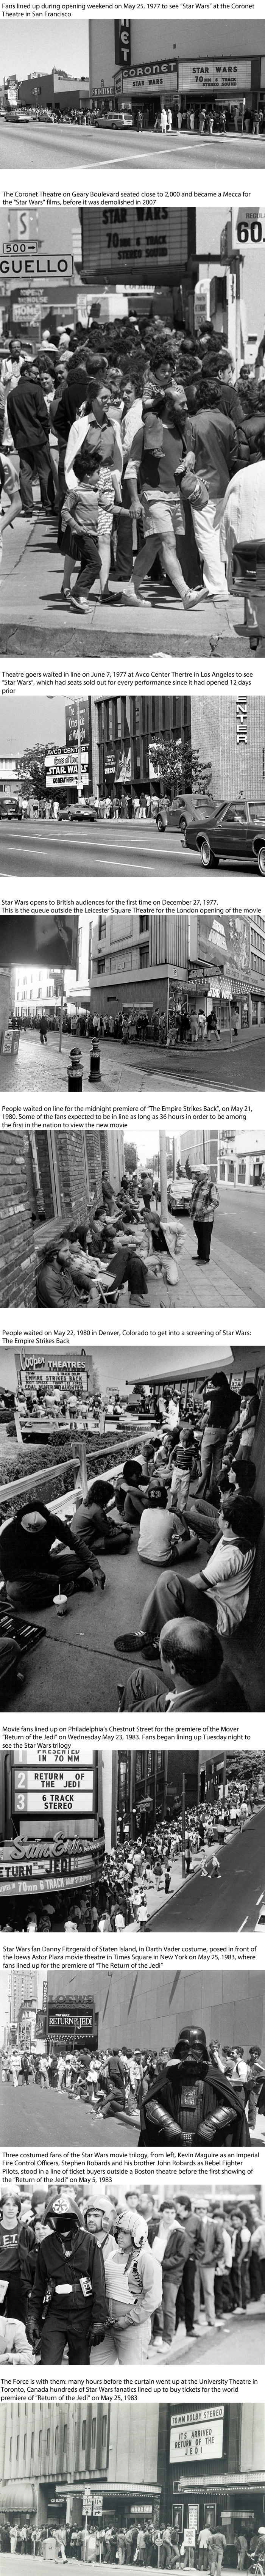 Vintage photos of Star Wars fans lining up for the movie